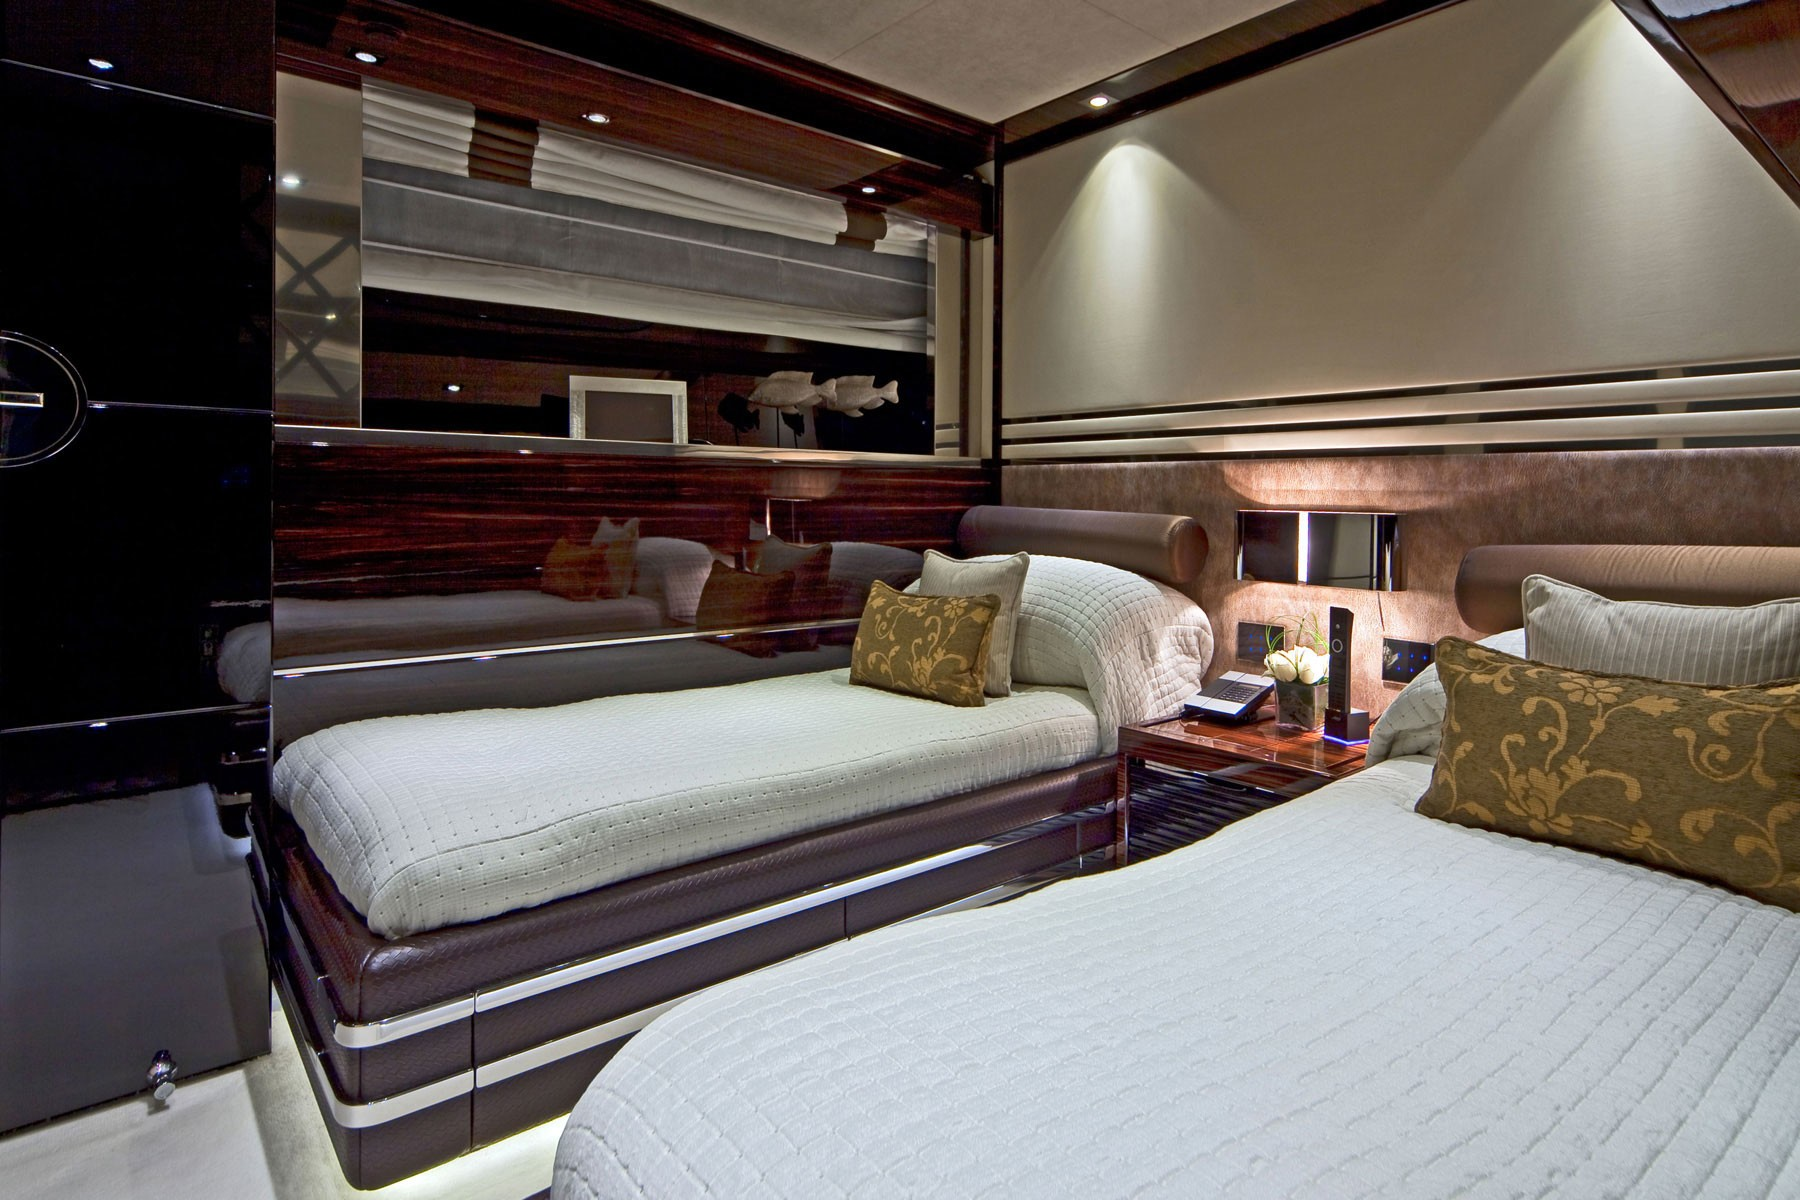 Profile Yacht Manifiq S Twin Bed Cabin Pictured Luxury Yacht Browser By Charterworld Superyacht Charter